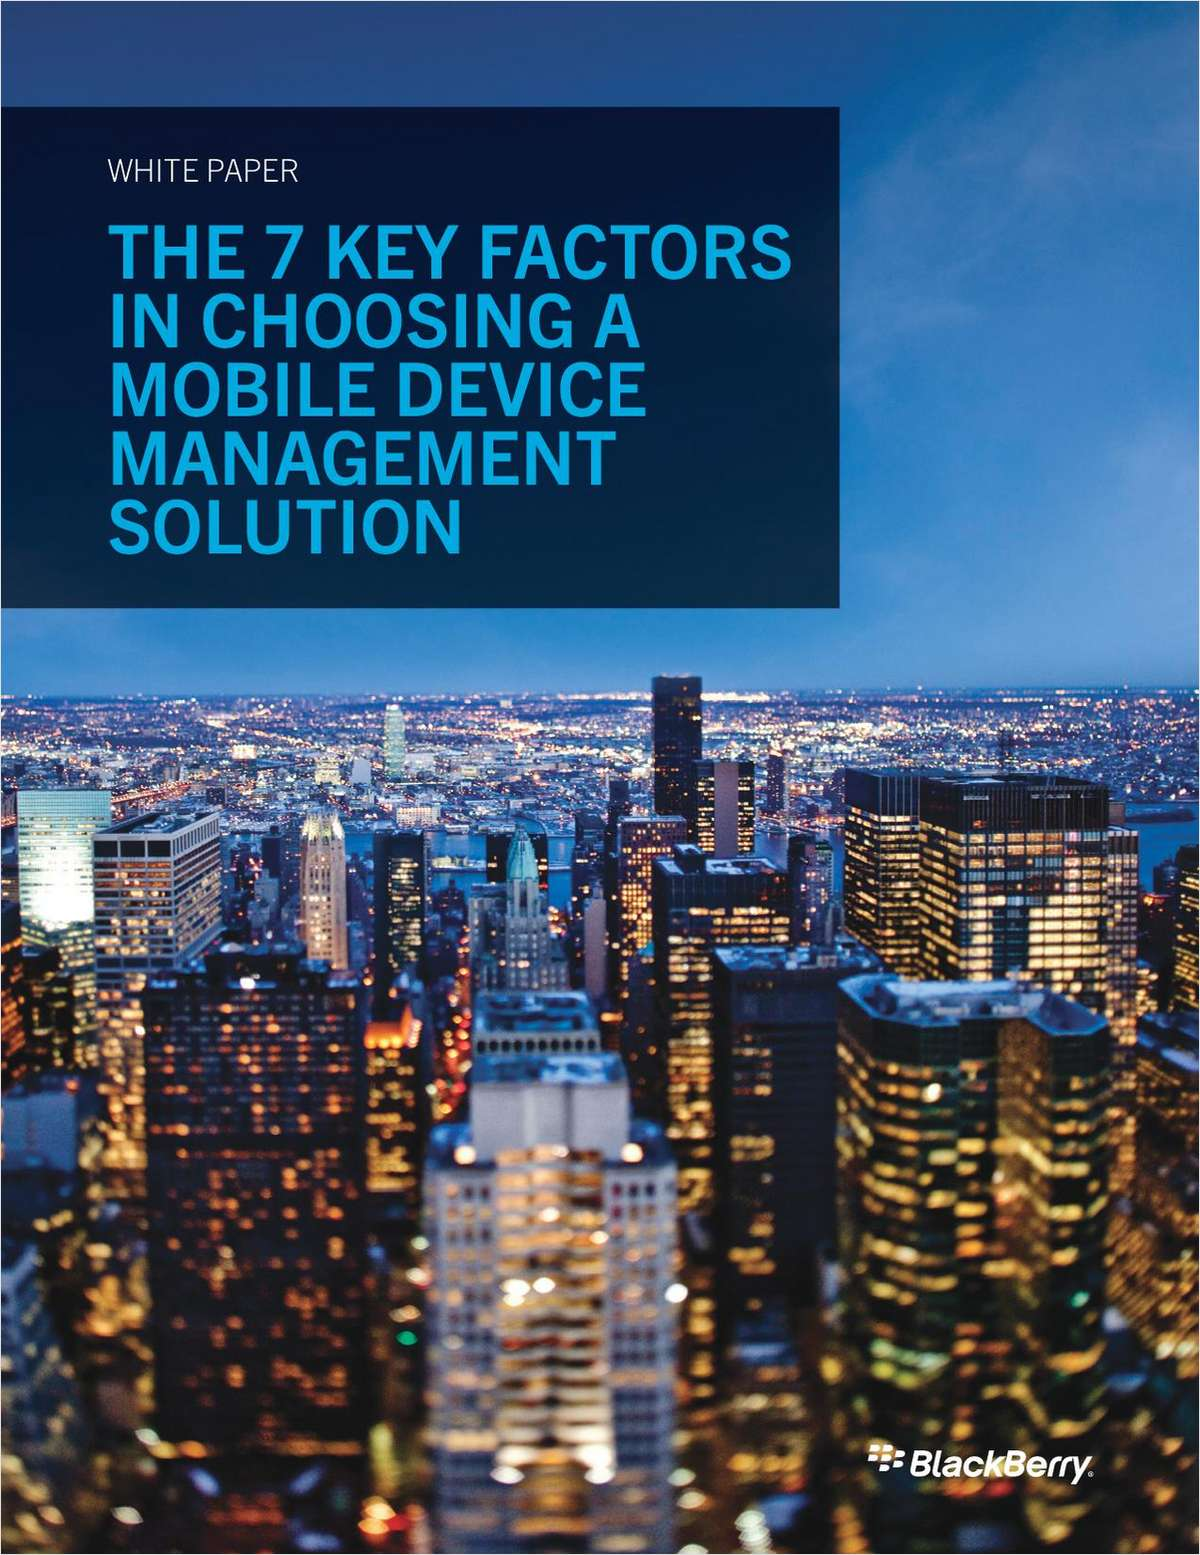 The 7 Key Factors in Choosing a Mobile Device Management Solution